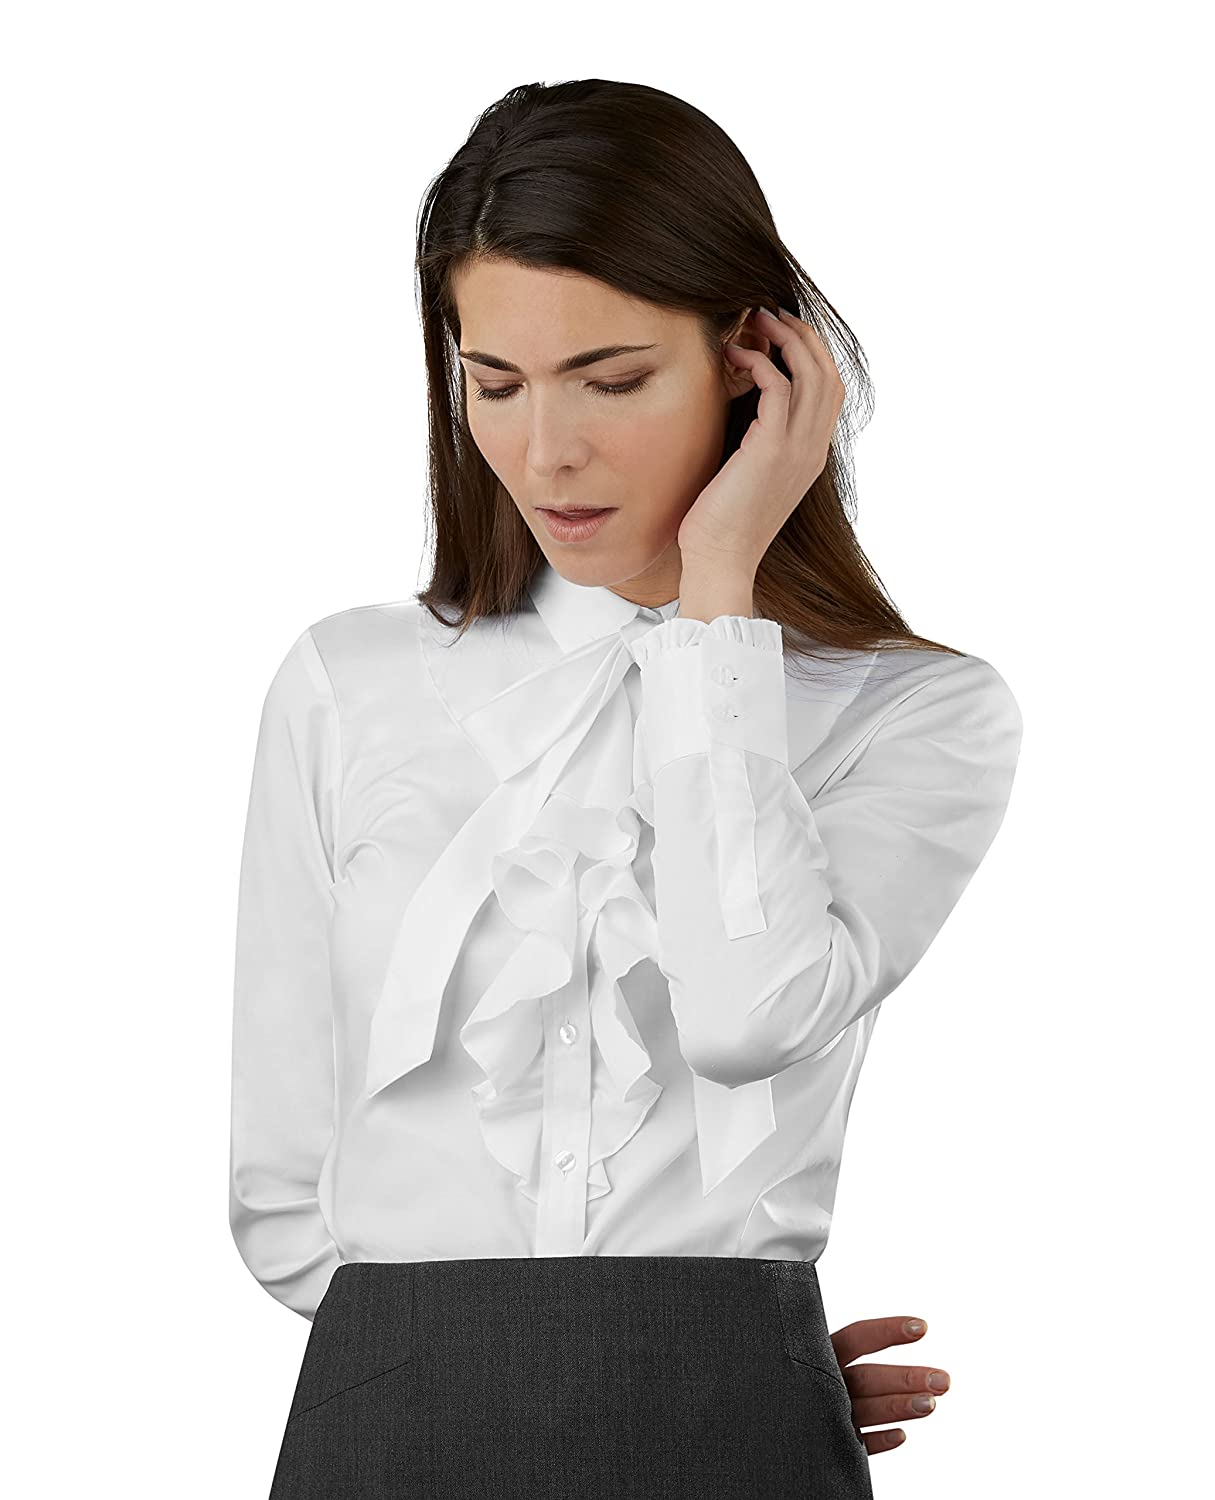 Tmlewin Womens Fitted White Fine Twill Frill Bow Shirt Amazon